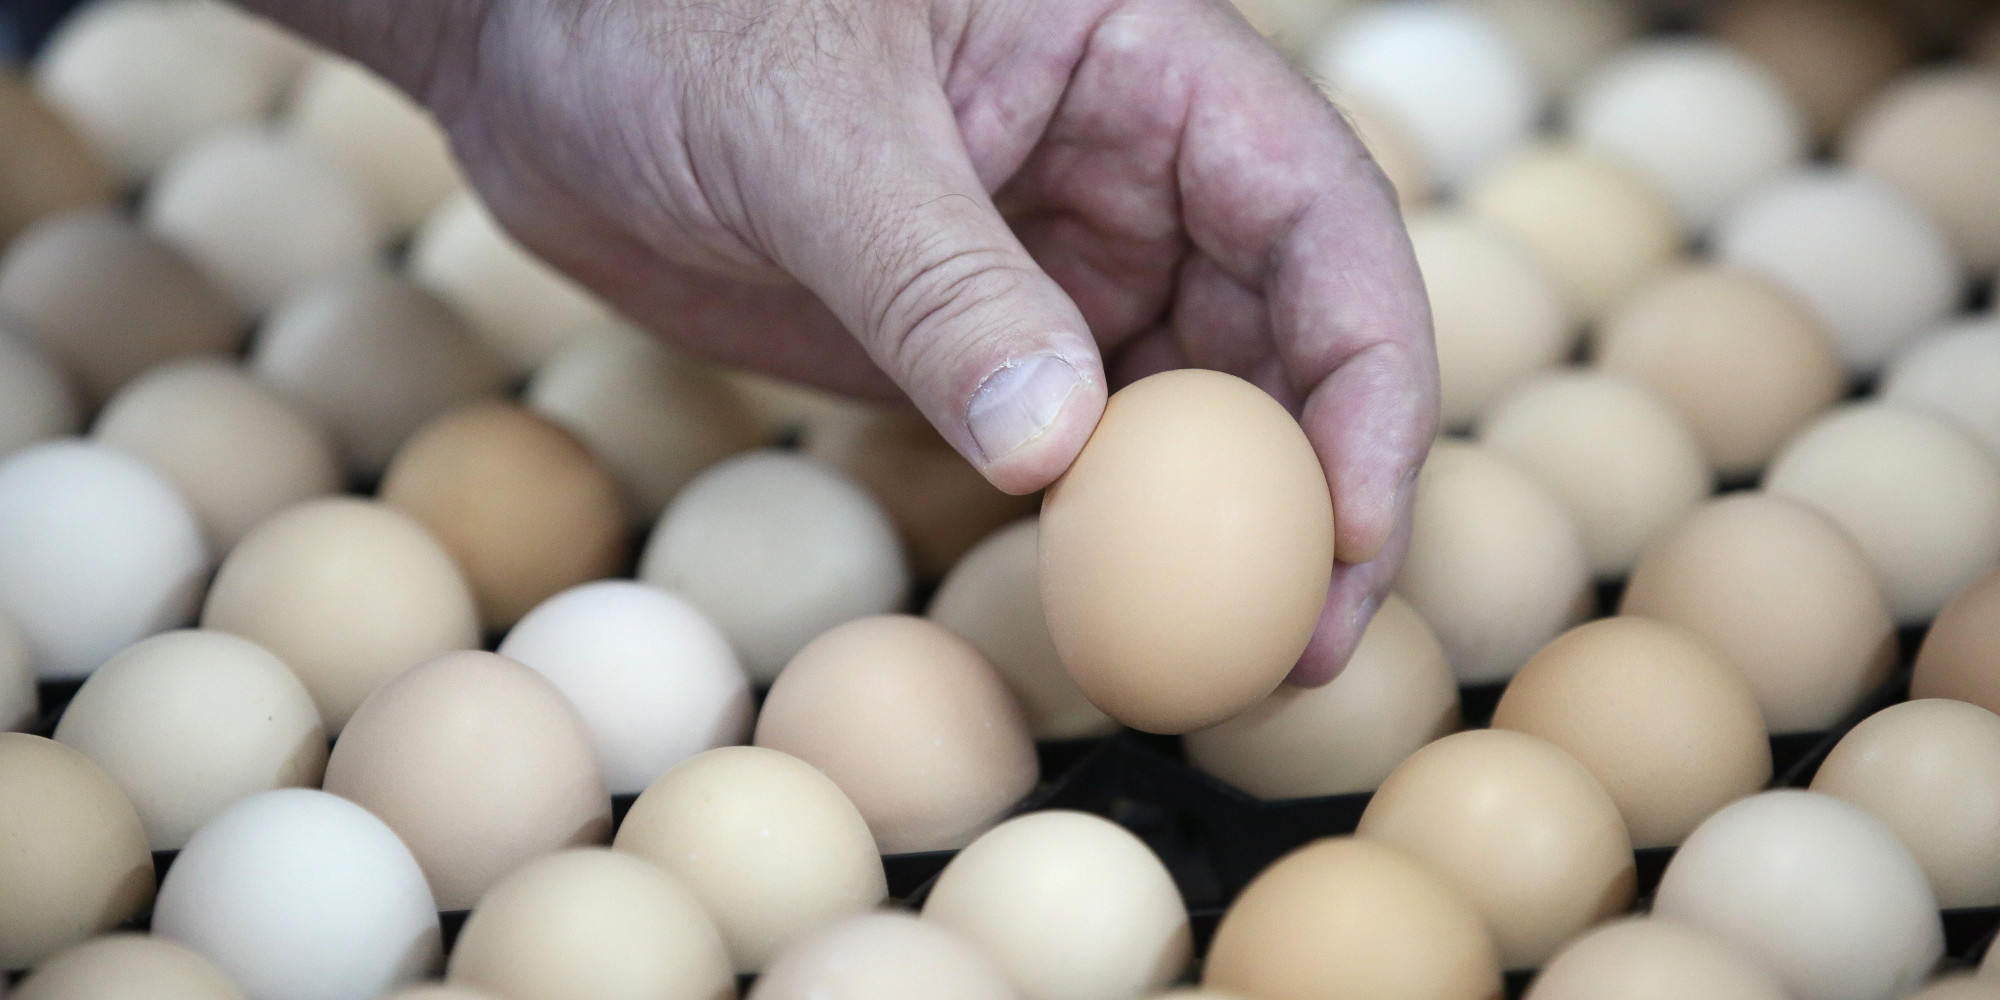 how to find out if eggs are fresh